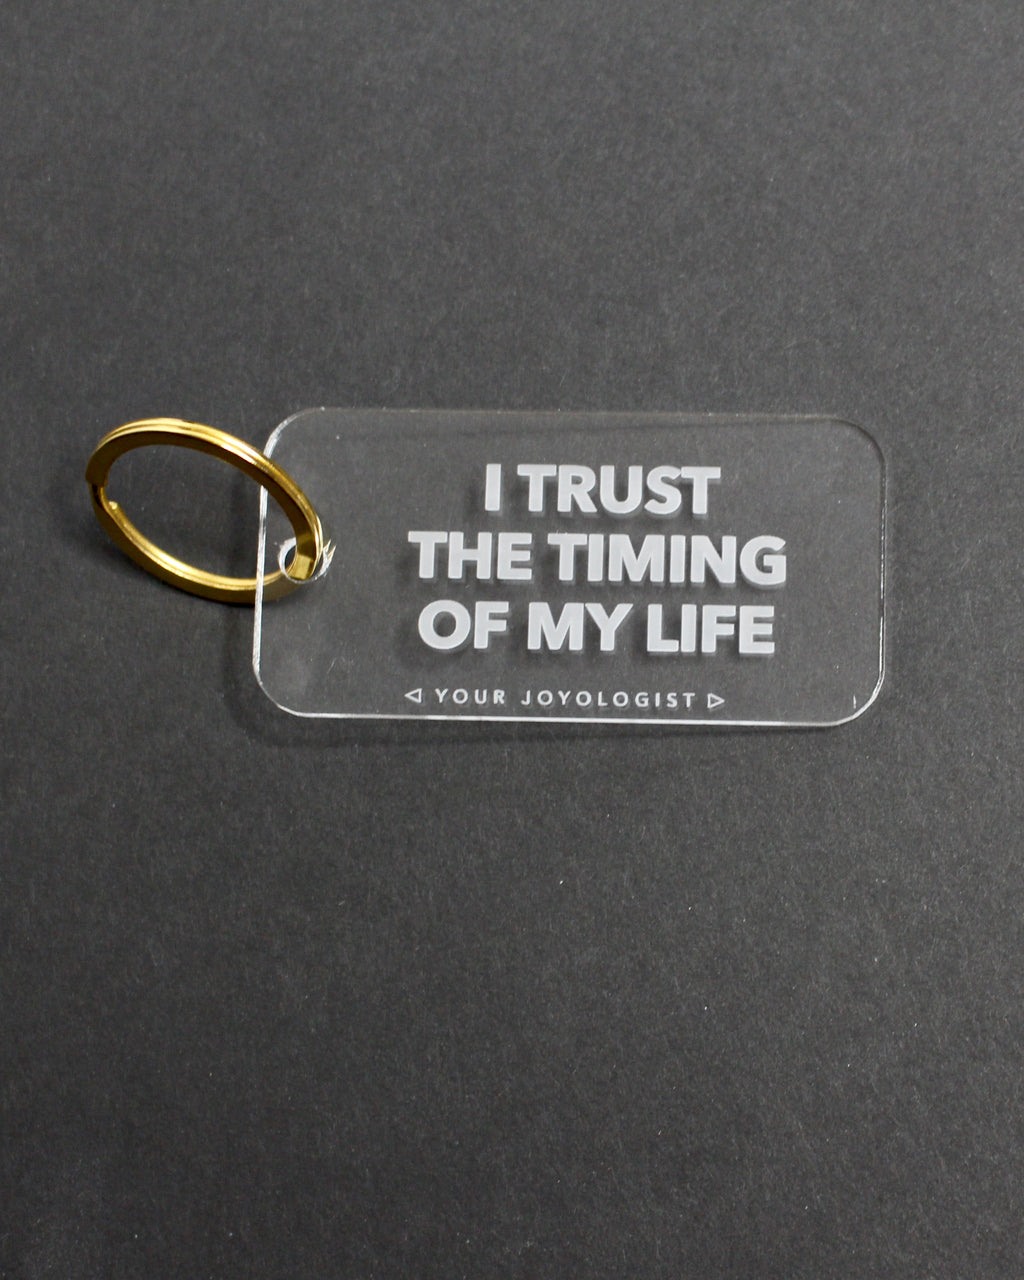 I trust the timing of my life - key chain